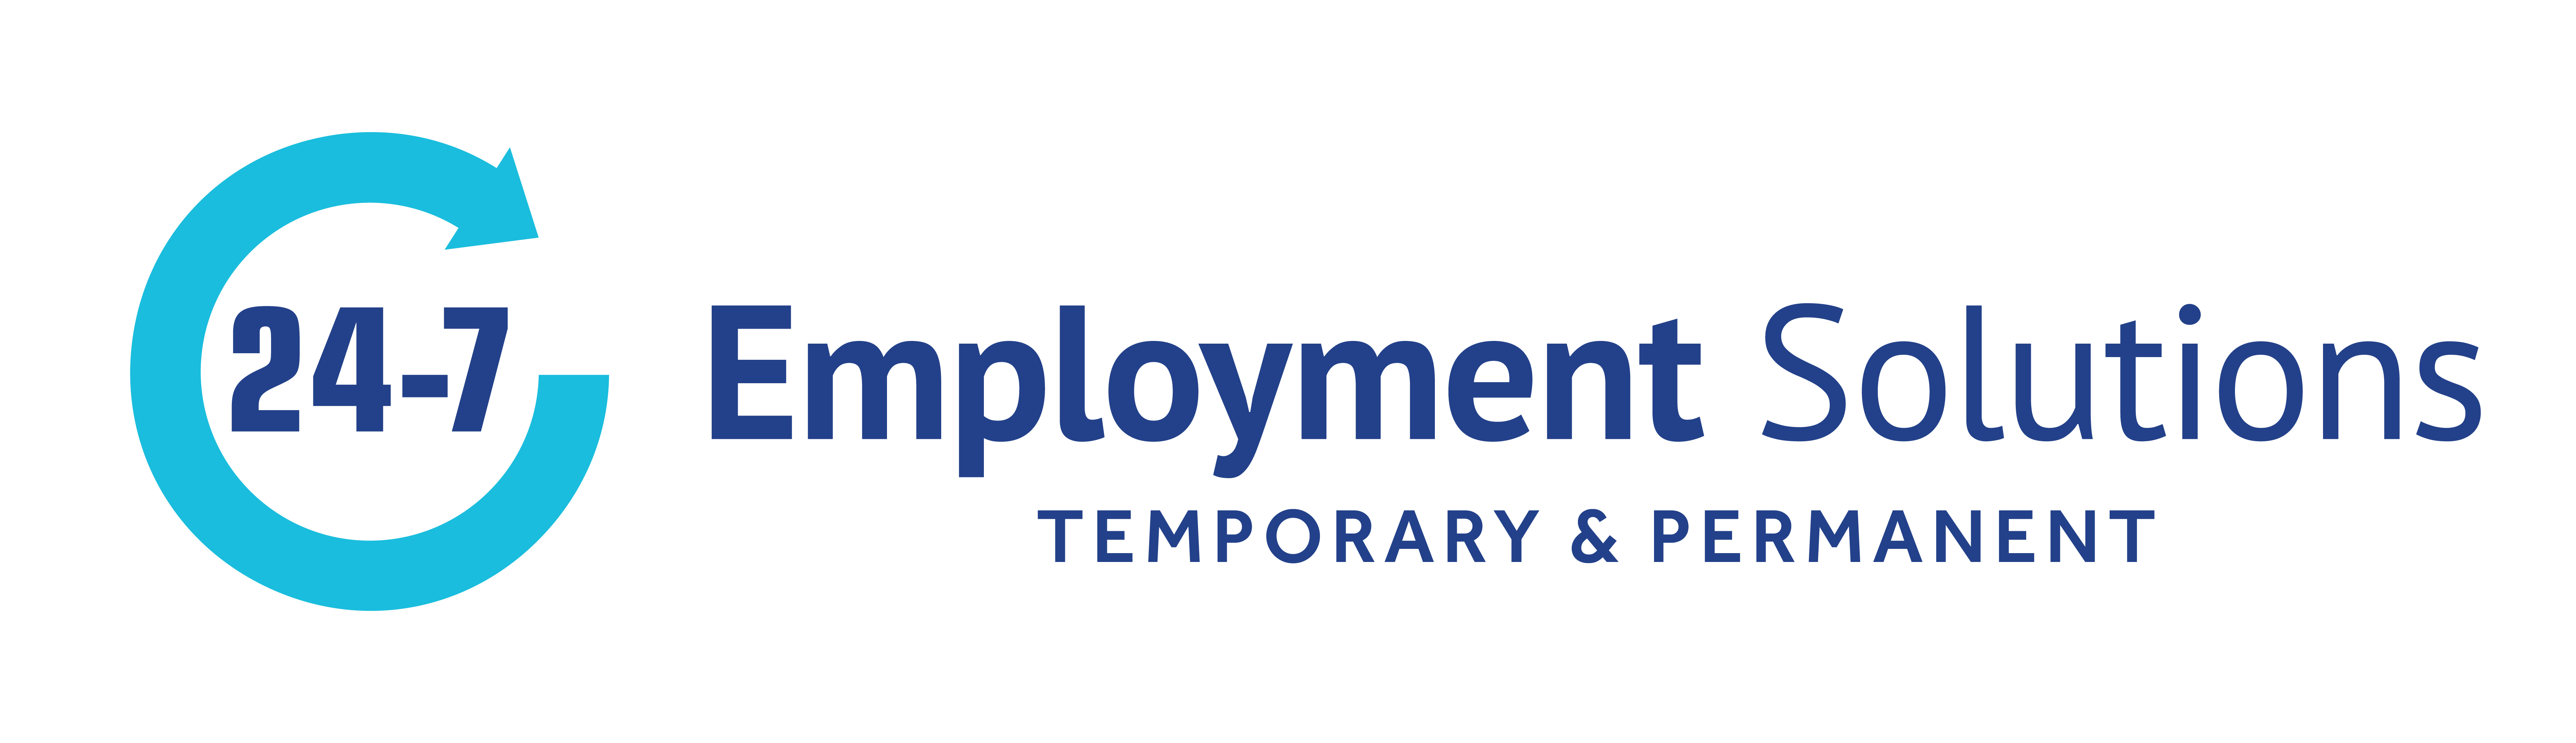 24-7 Employment Solutions